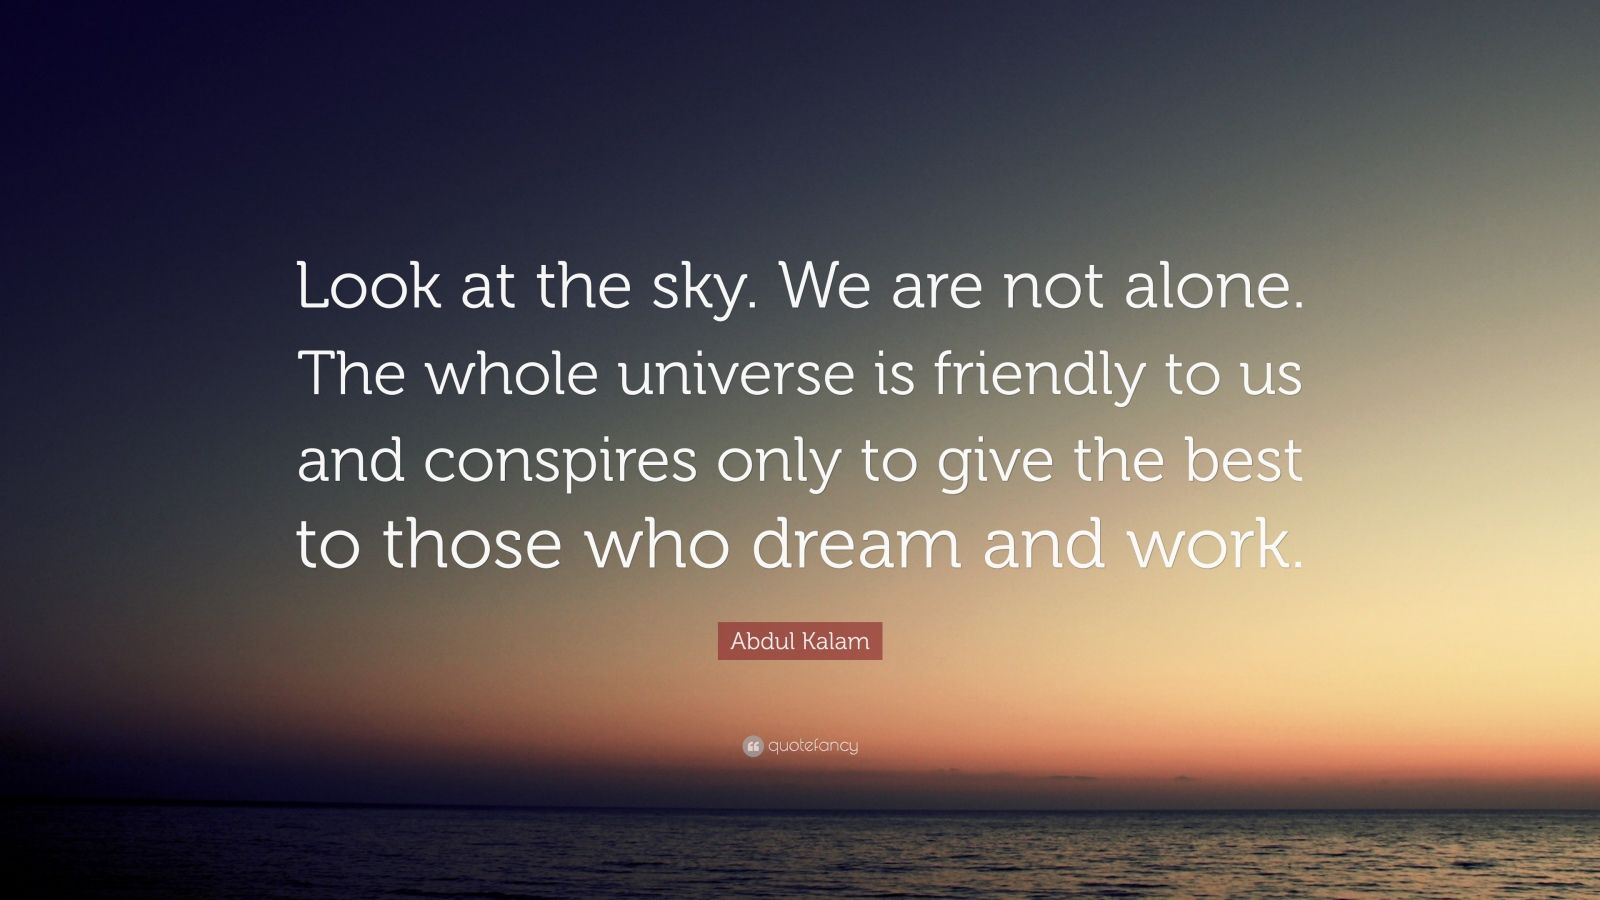 """Abdul Kalam Quote: """"Look at the sky. We are not alone. The whole universe is friendly to us and conspires only to give the best to those who dream and work."""""""